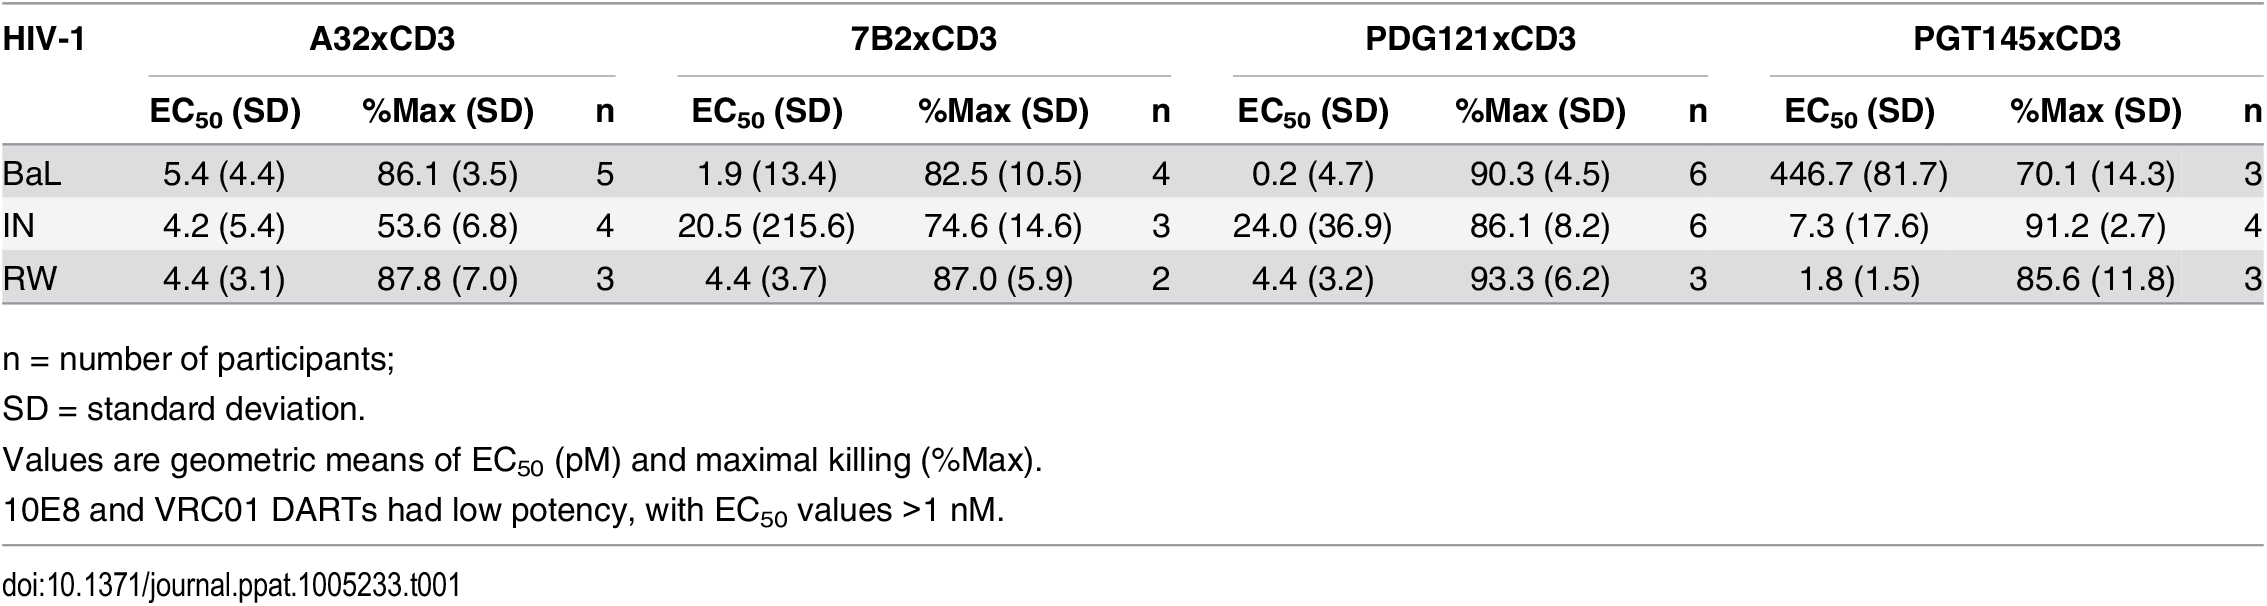 Summary of HIVxCD3 DART-mediated killing of HIV-1 infected CD4 T cells in vitro.